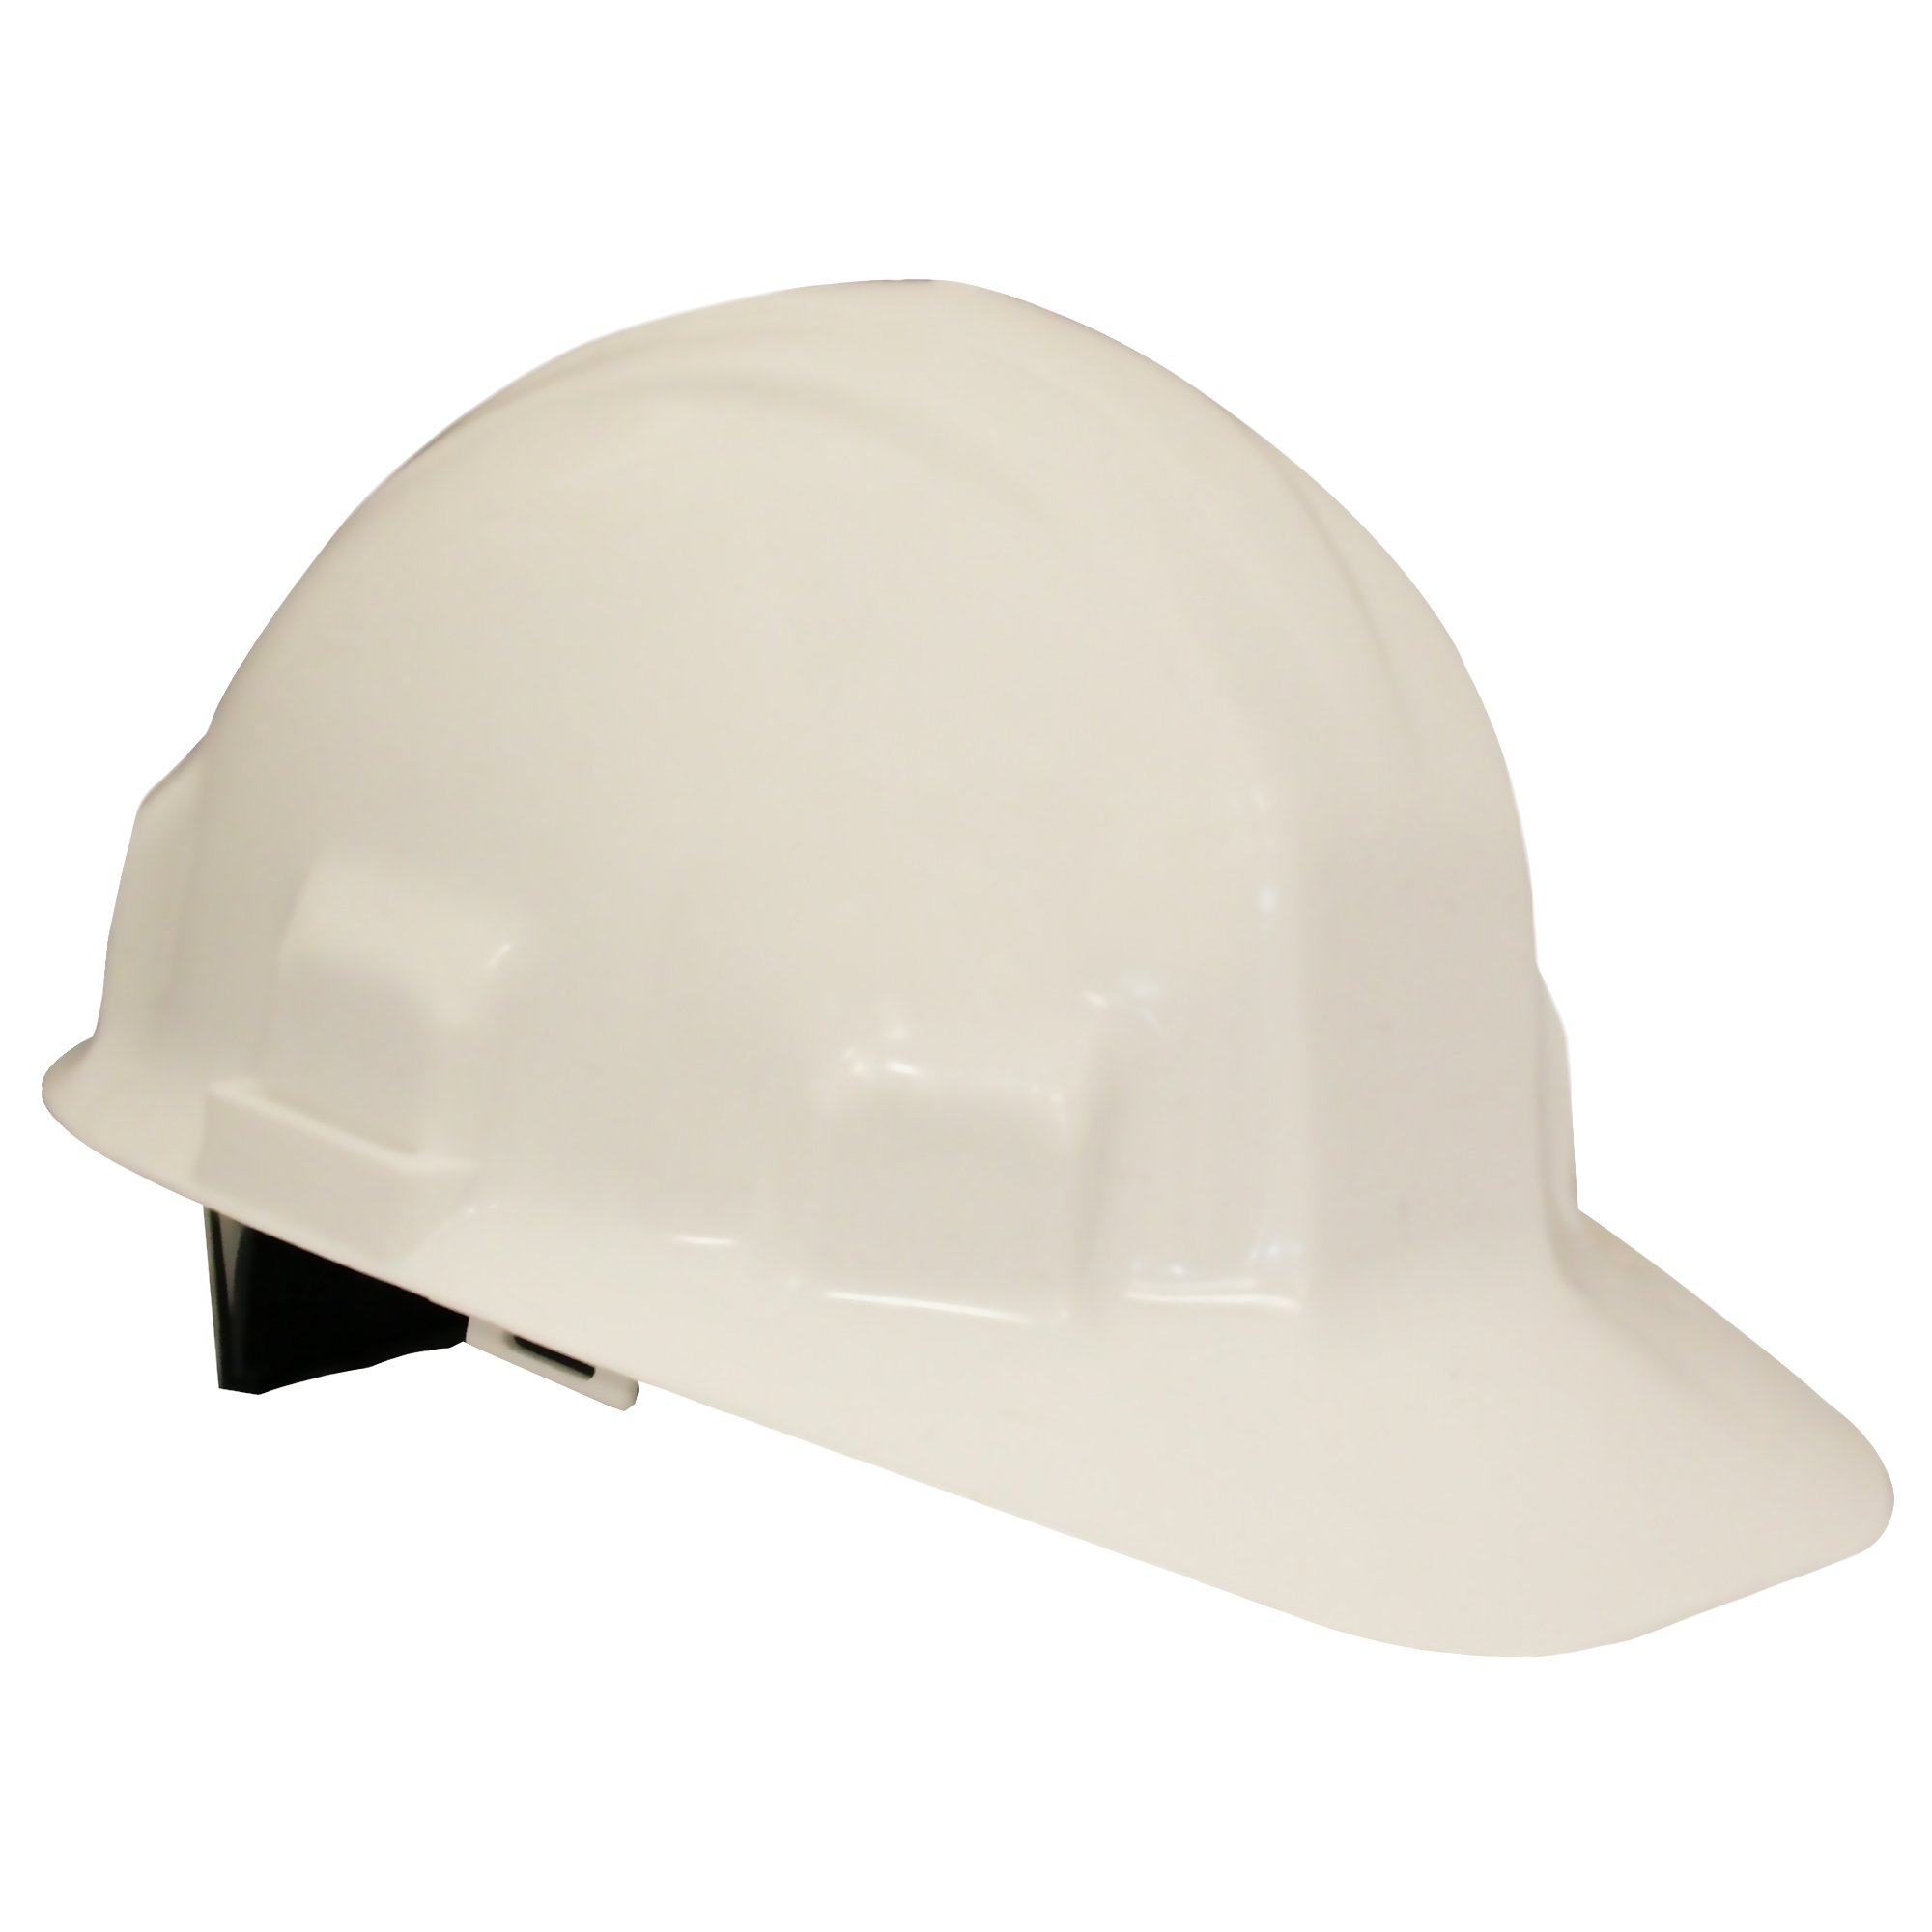 Jackson Safety Sentry III Hard Hat (14409), 6-Point Ratchet Suspension, Low Profile Safety Cap, White, 12 / Case